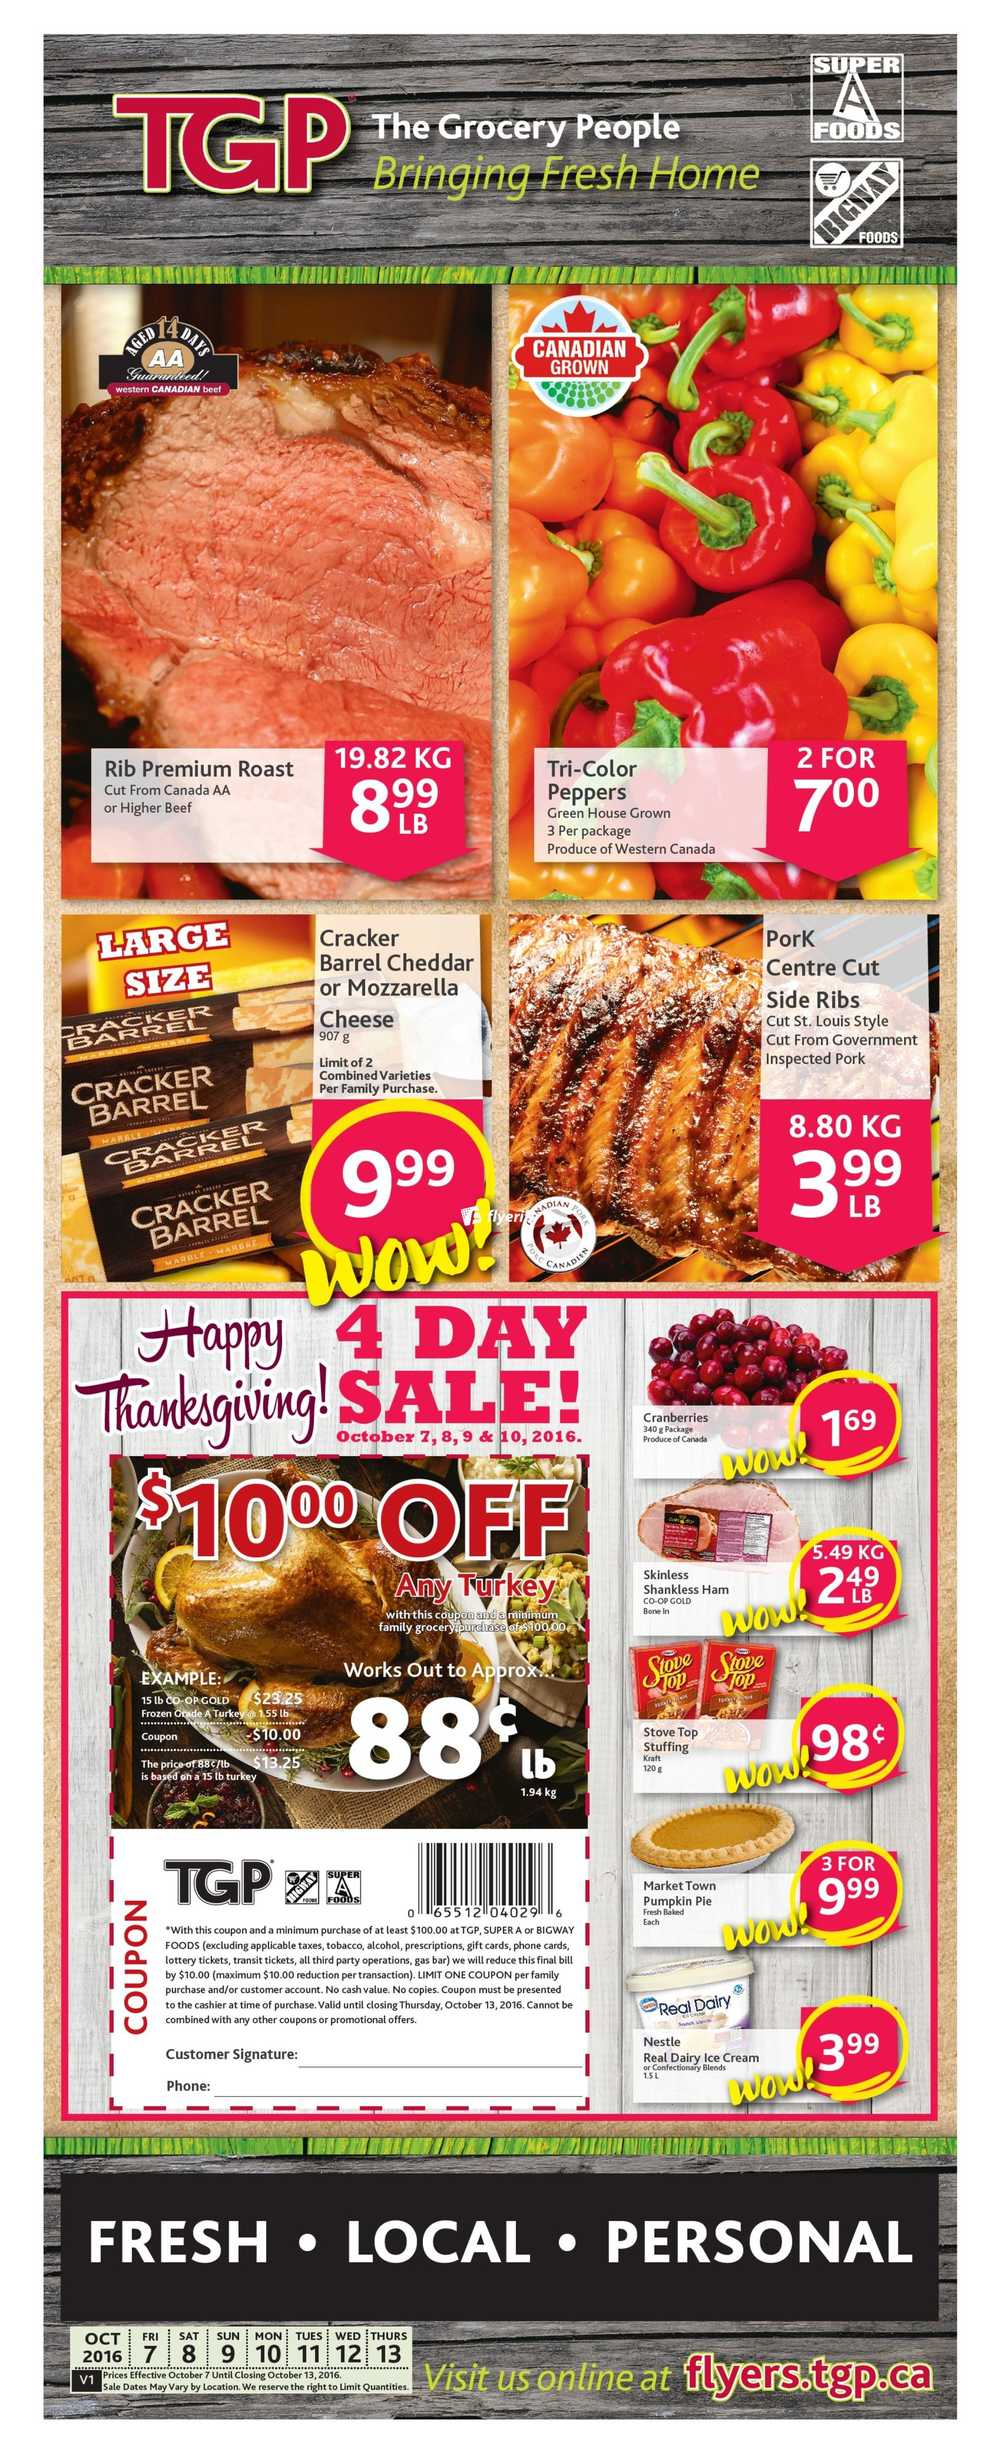 bigway foods super a foods flyers tgp the grocery people flyer 7 to 13